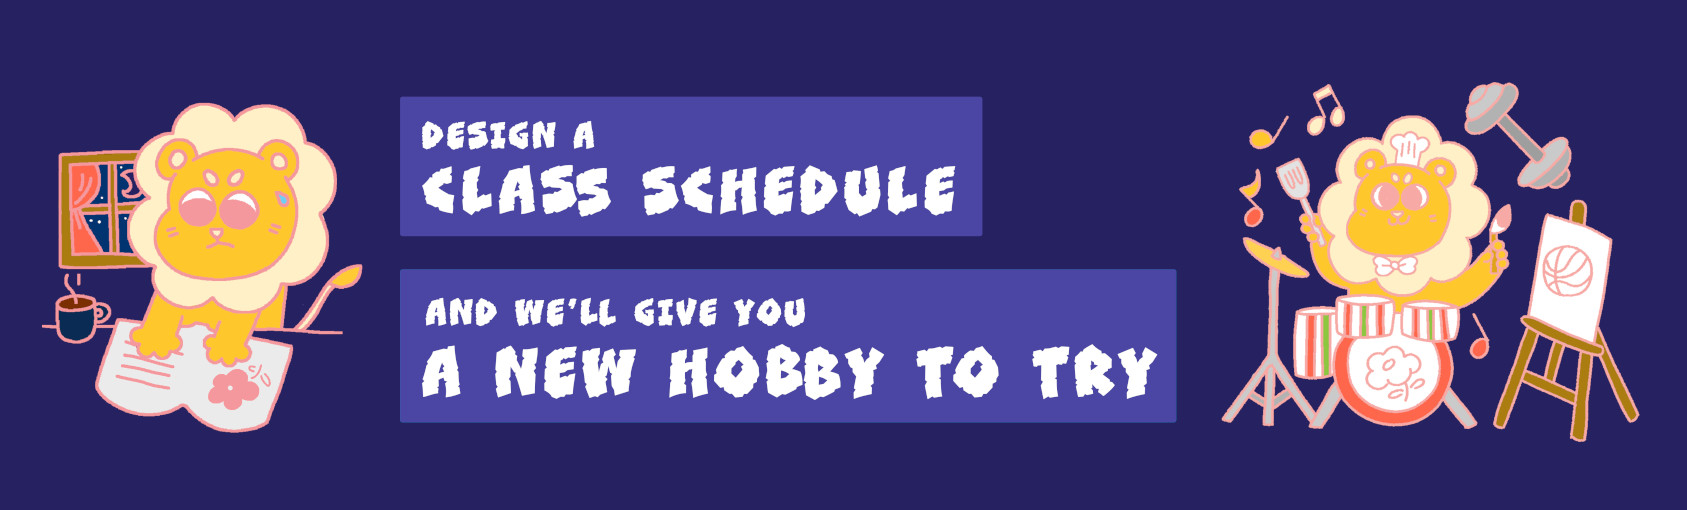 Quiz: Design a Class Schedule and We'll Give You a New Hobby to Try banner